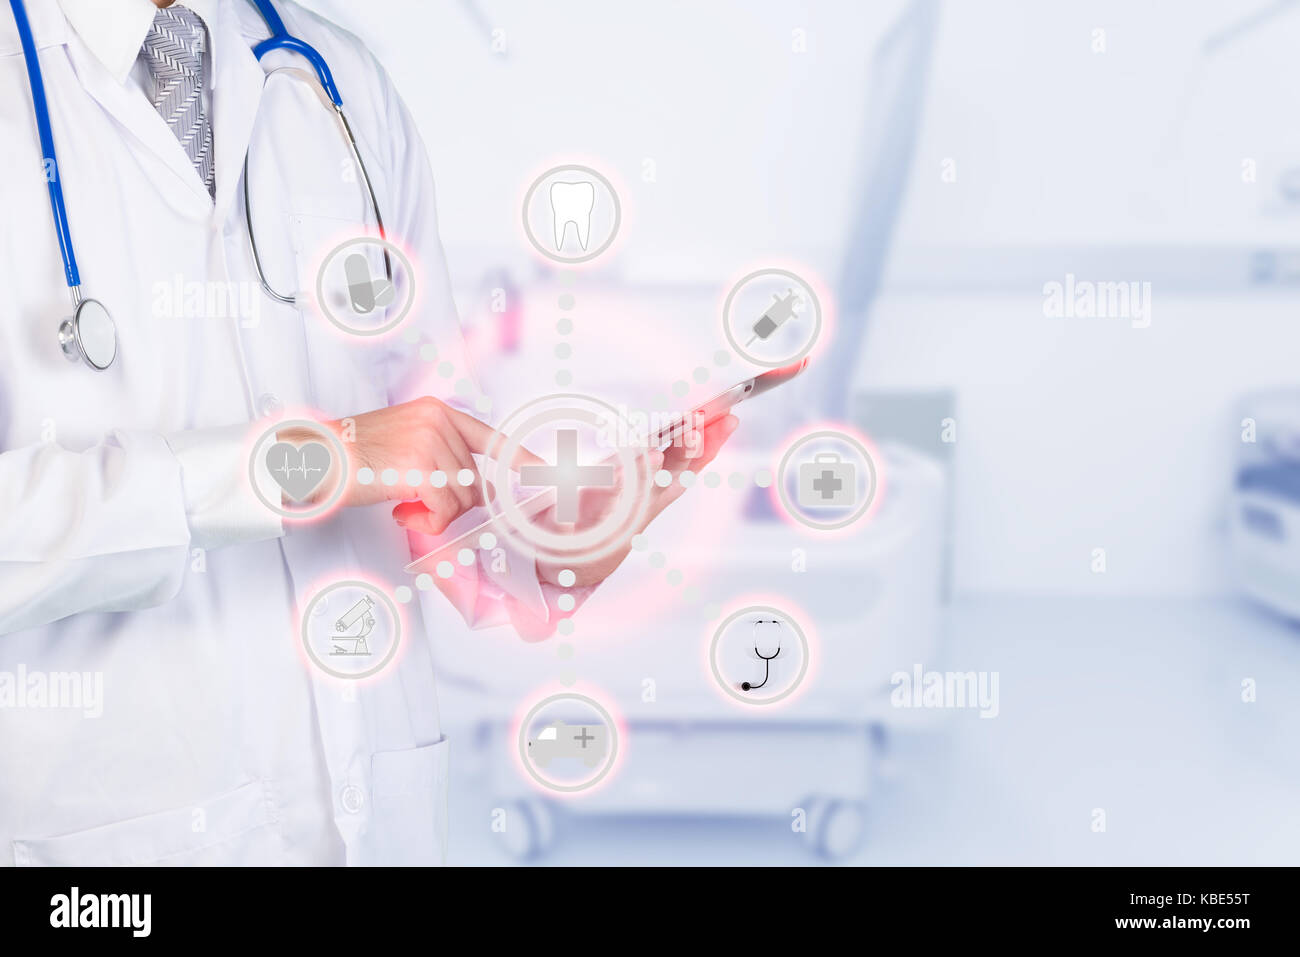 Smart medicine doctor using automation app on digital tablet in a hospital. Internet of things concept at hospital. - Stock Image